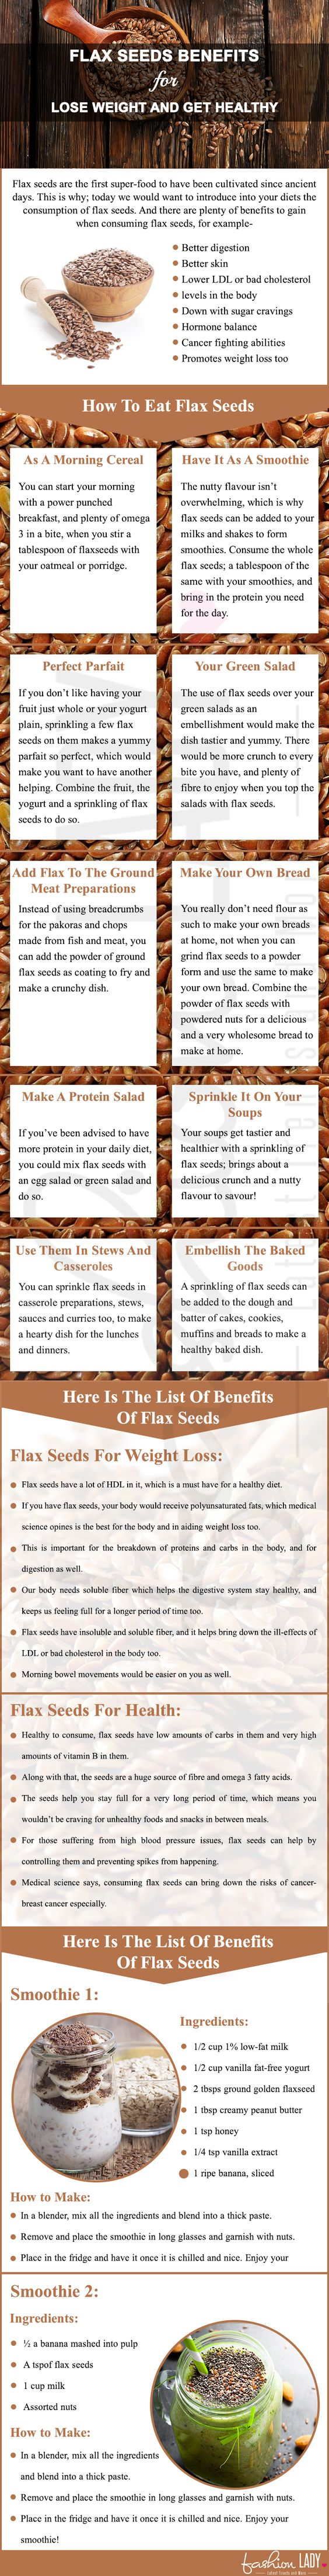 flax seeds benefits for lose weight and get healthy